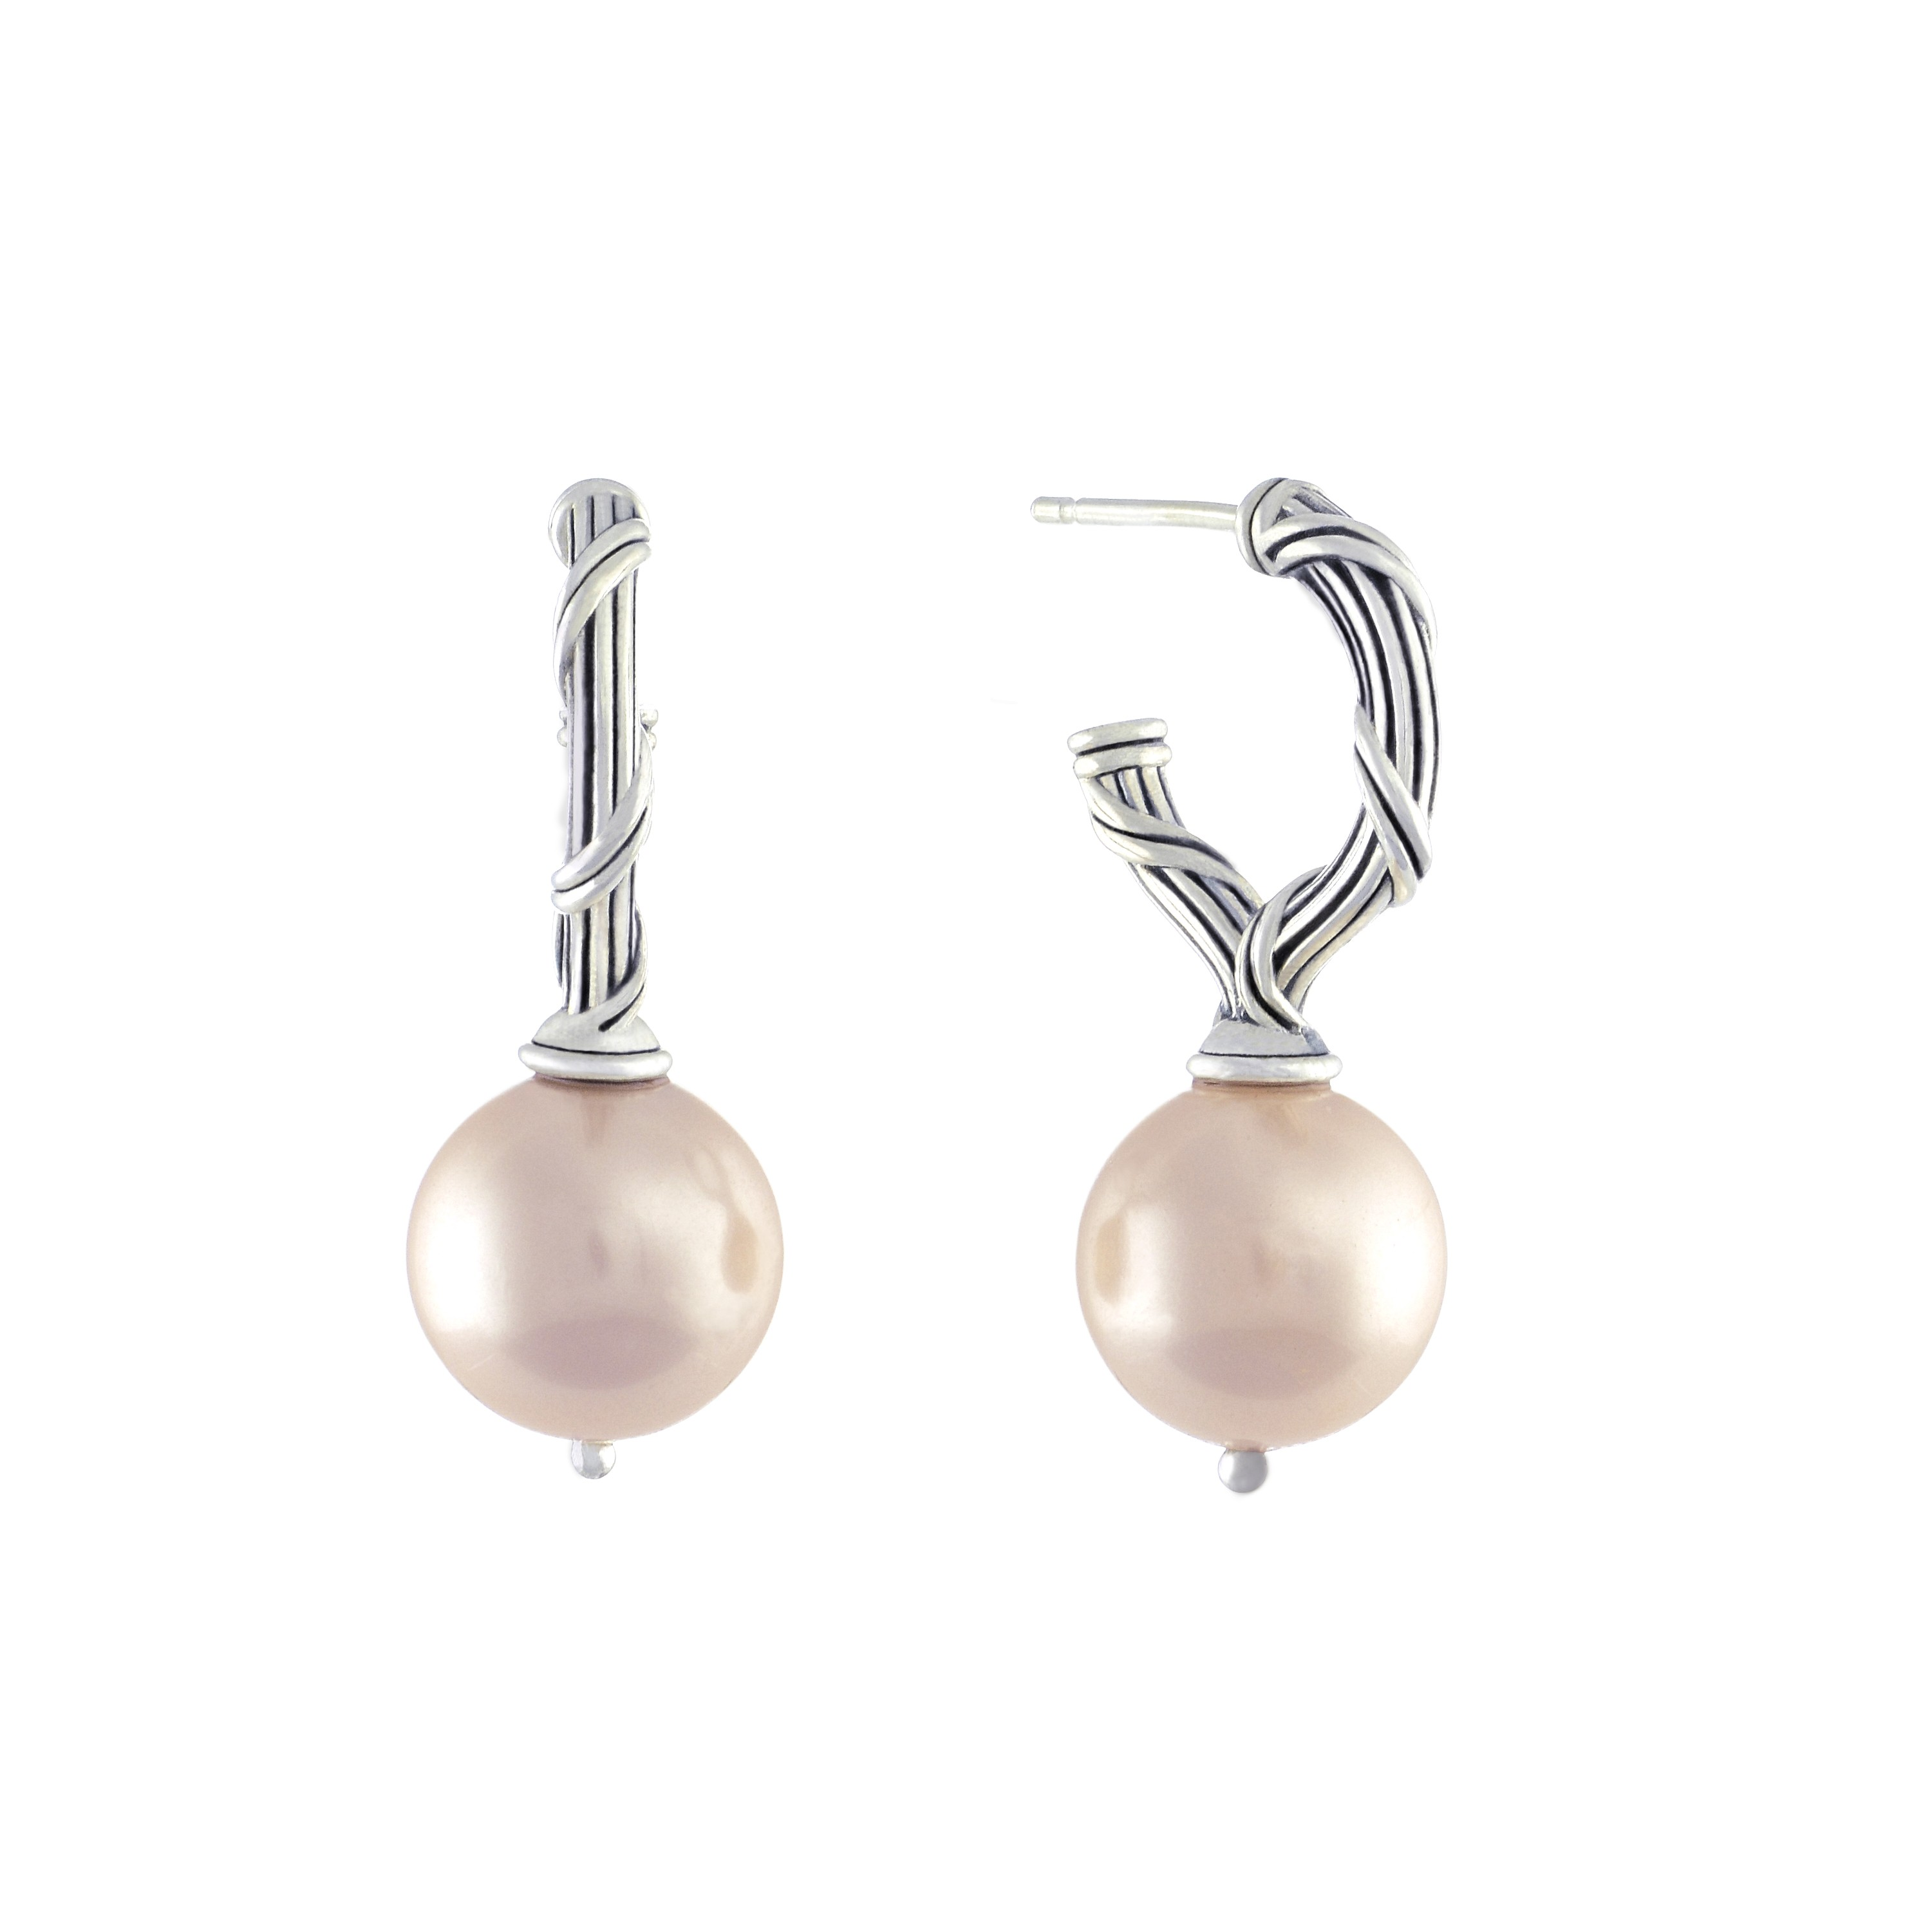 Bead Earrings with pink sea shell pearls in sterling silver